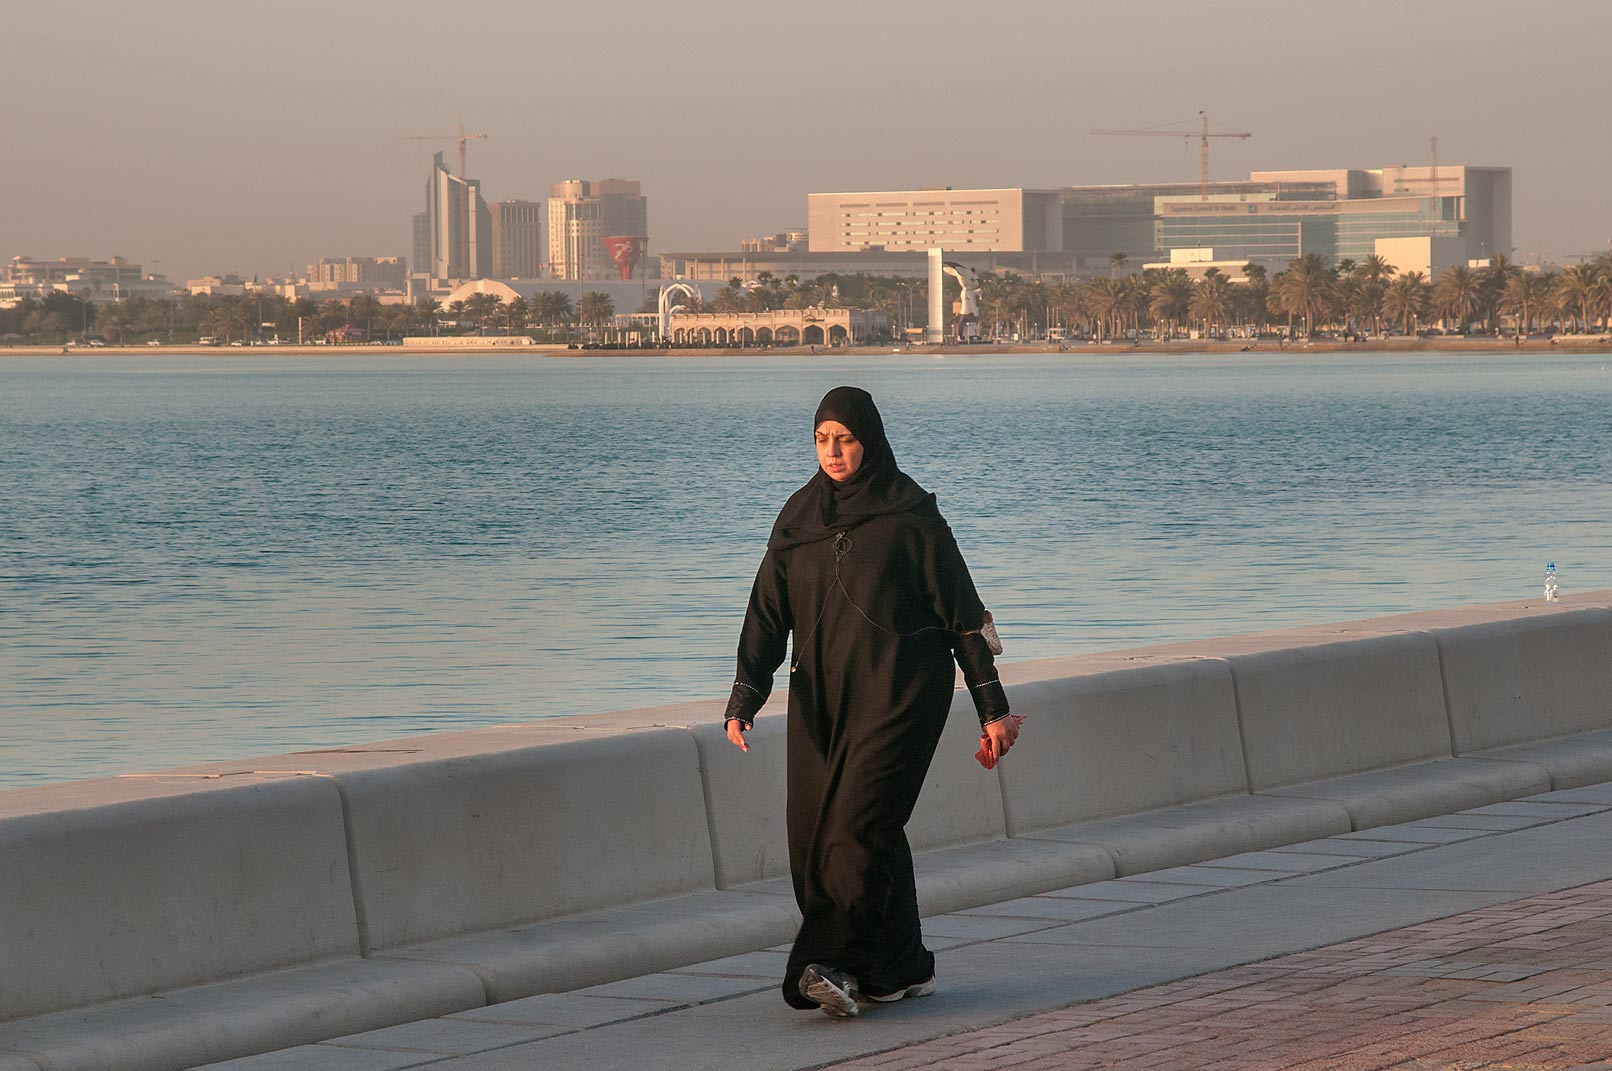 Jogging on Corniche promenade at morning. Doha, Qatar